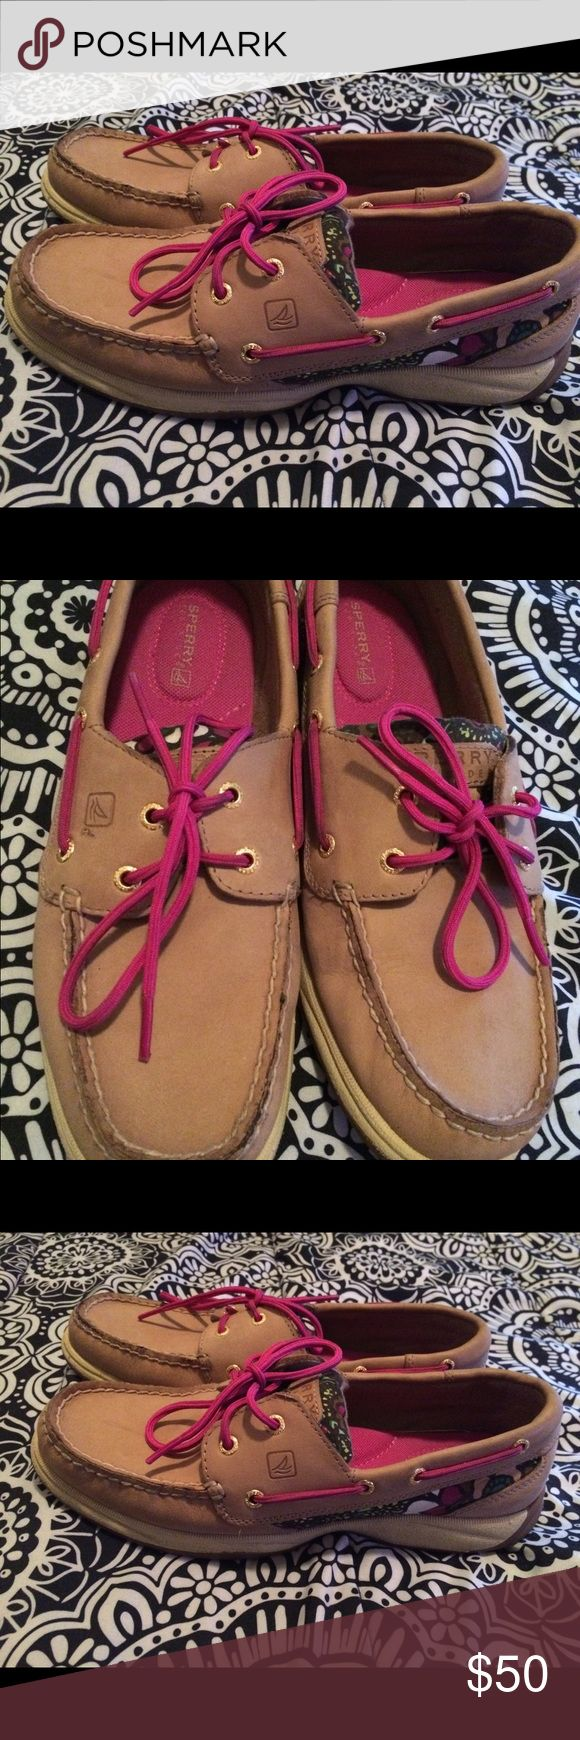 Sale! Women's Sperrys! Nice Ivy, pink and a little white on the side sperrys shoes. Still in pretty good condition. Shoes